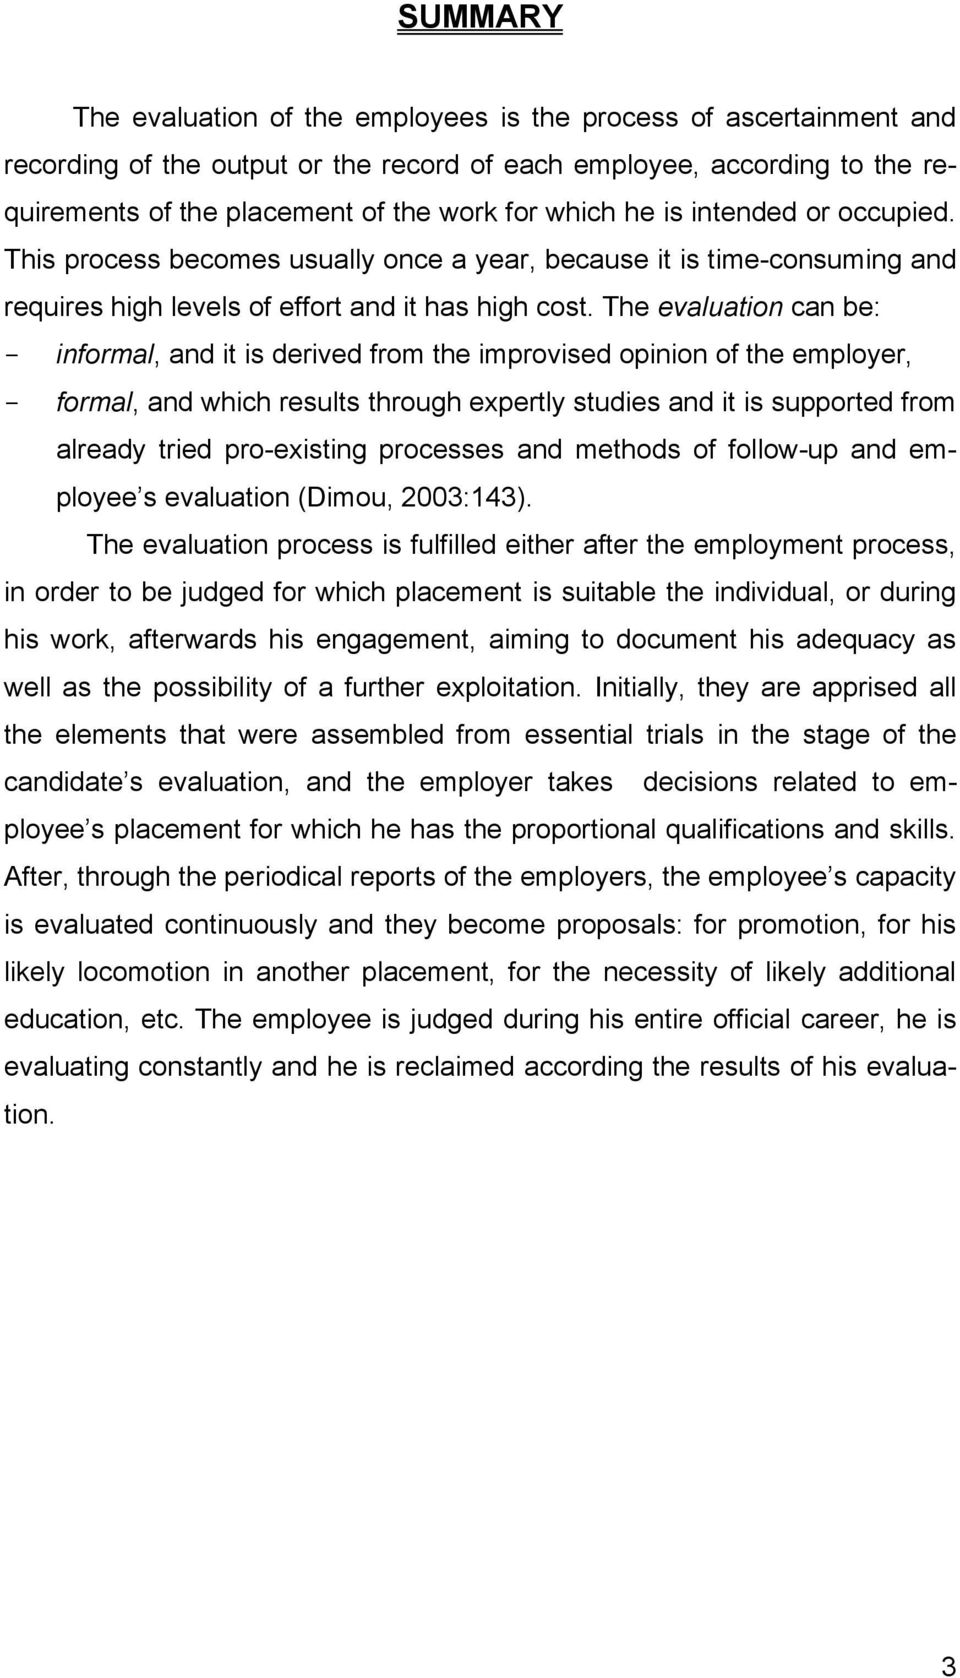 The evaluation can be: - informal, and it is derived from the improvised opinion of the employer, - formal, and which results through expertly studies and it is supported from already tried